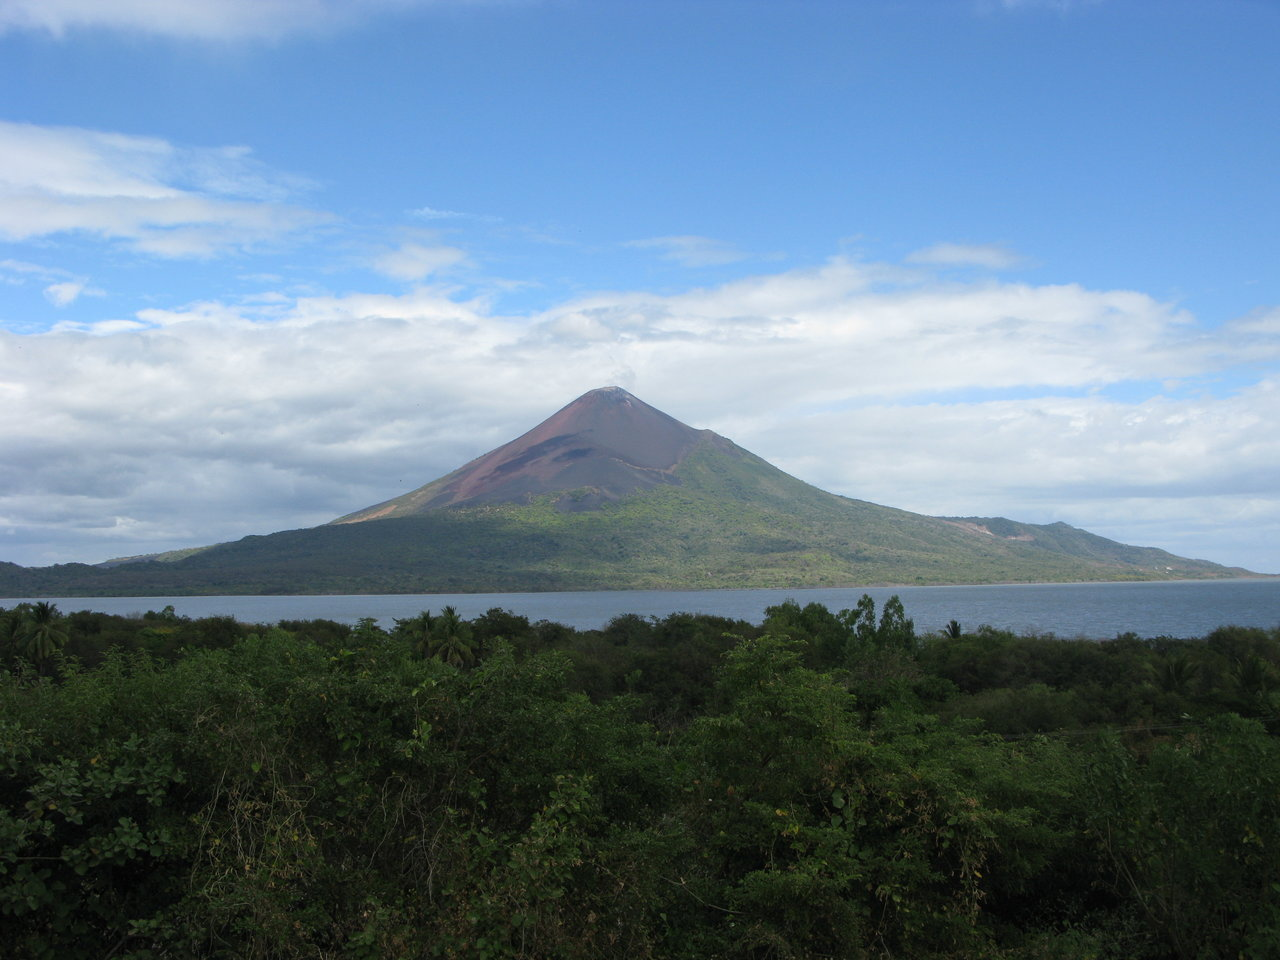 Nicaragua is divided into three regions the North Central Highlands, the Pacific Lowlands, and the Atlantic Lowlands.